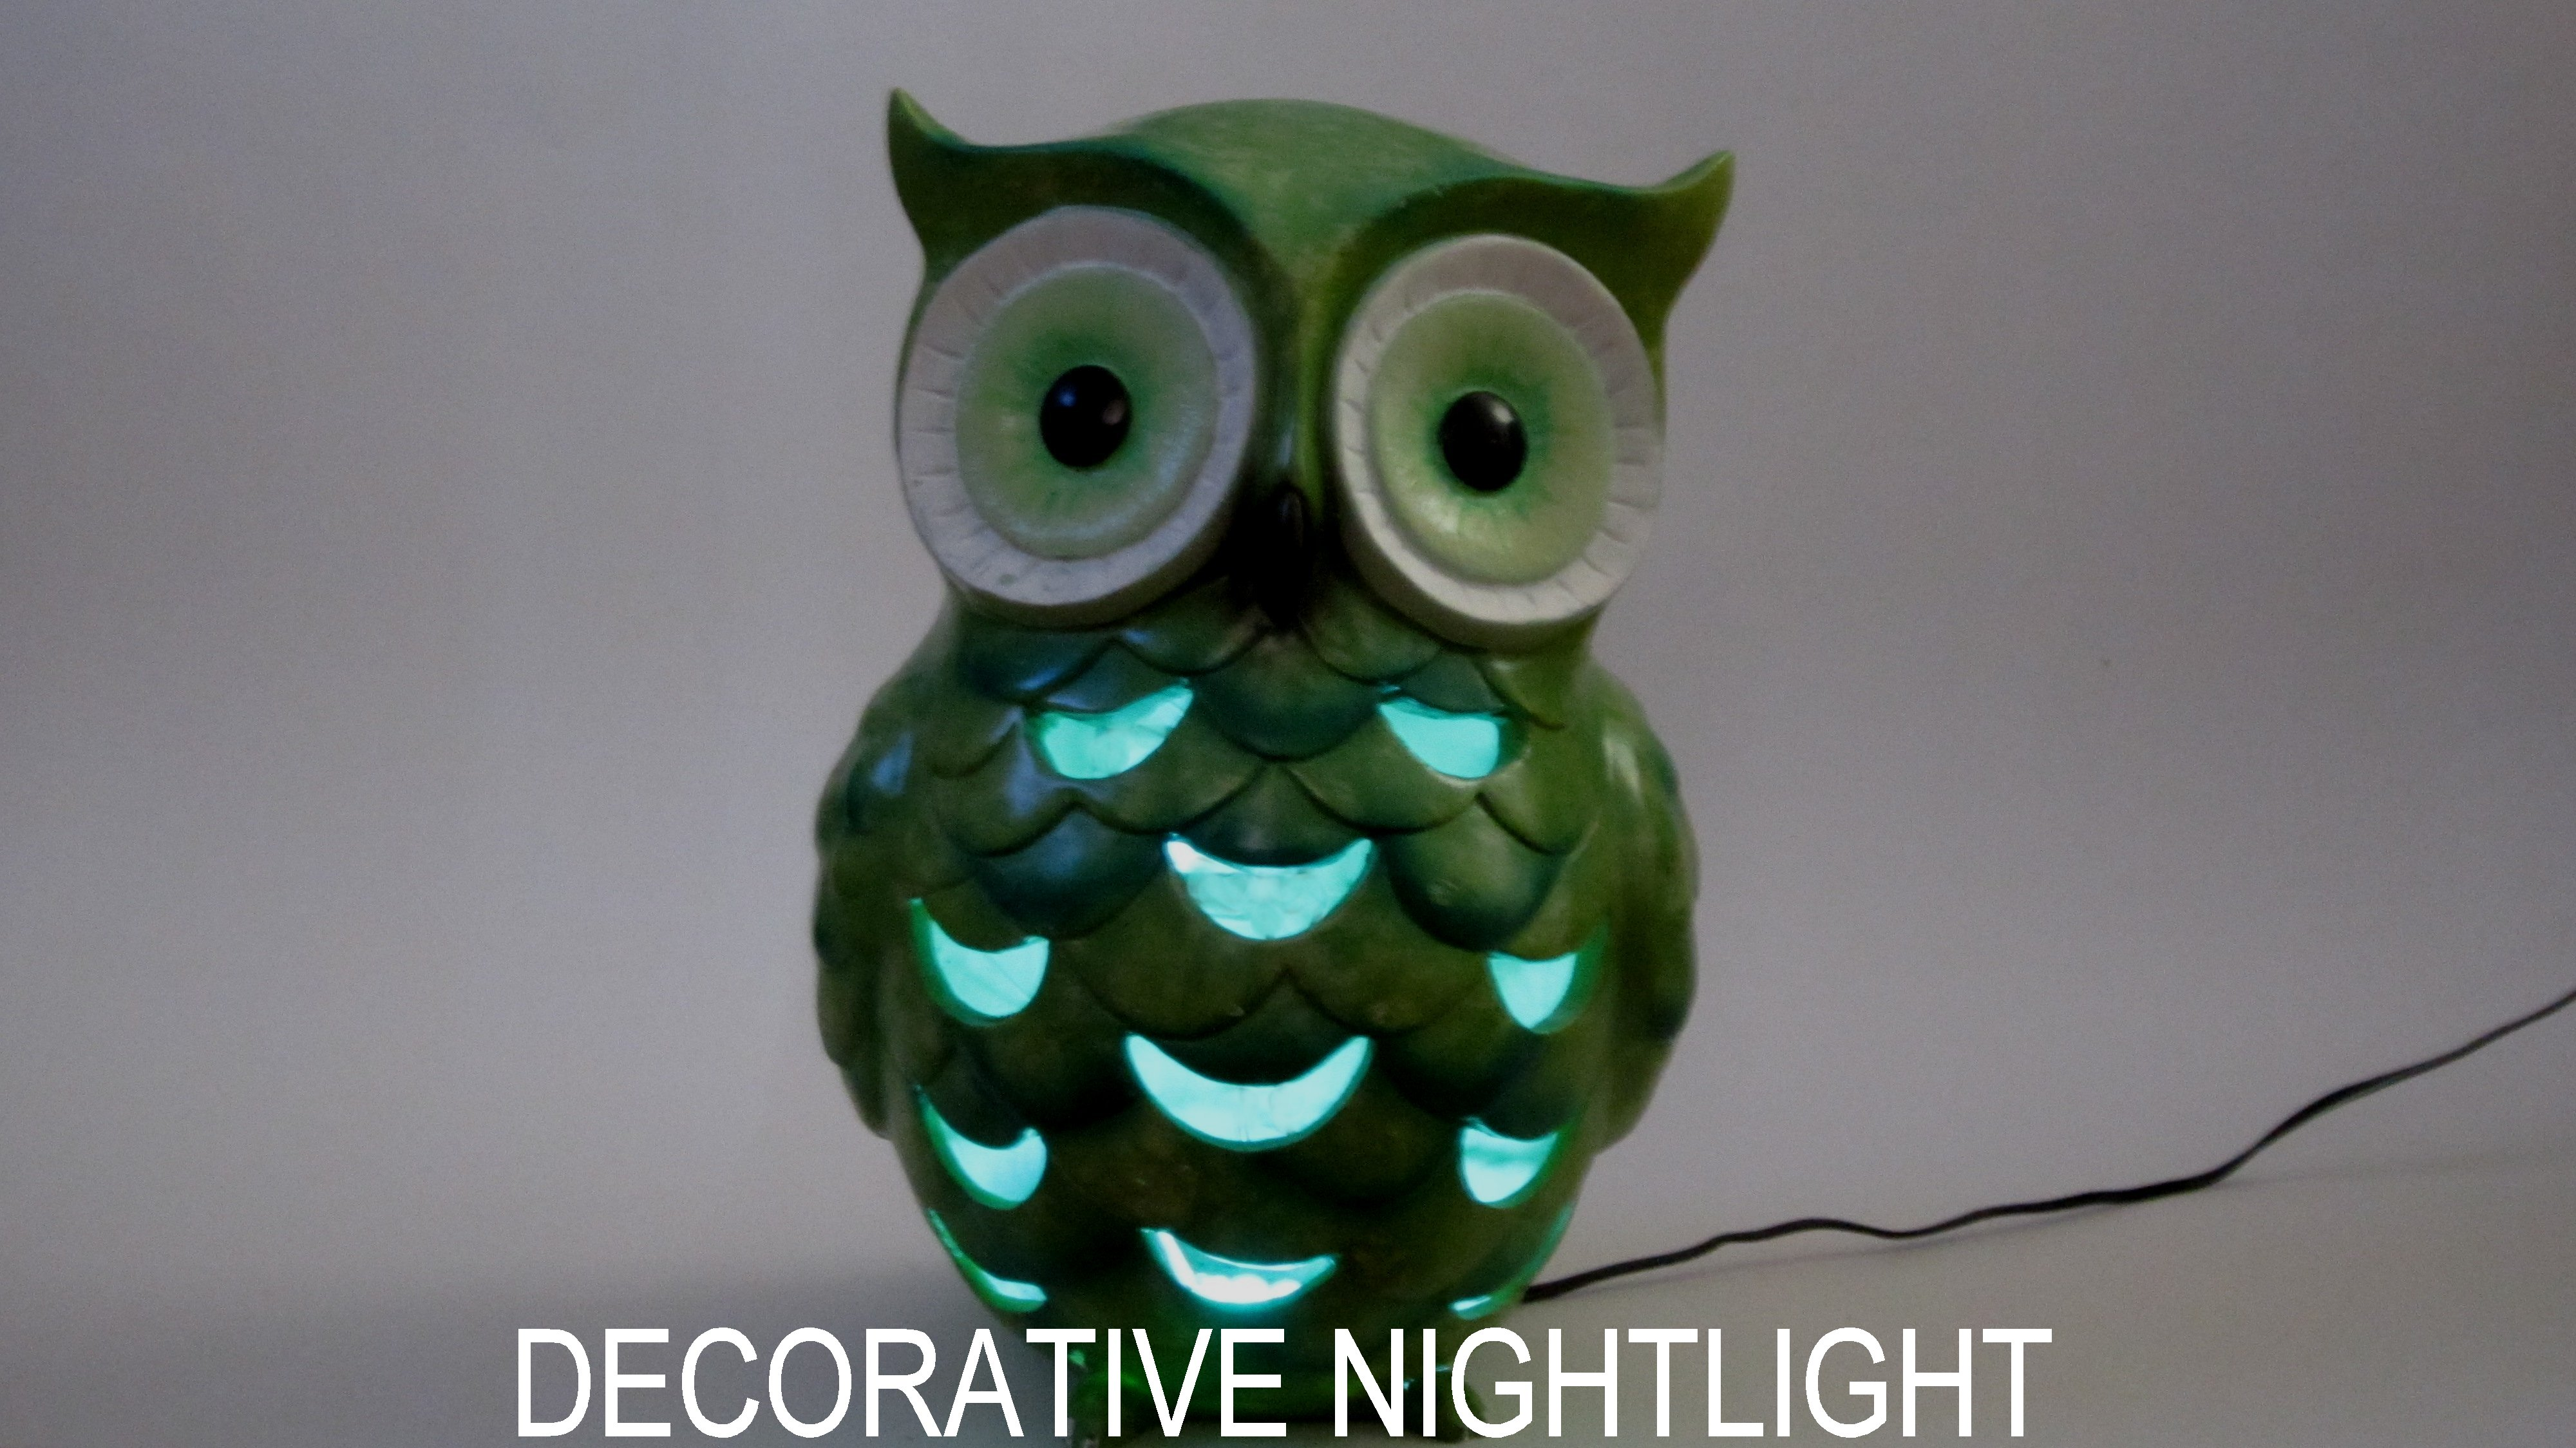 Make a Children's Nightlight From a Garden Ornament